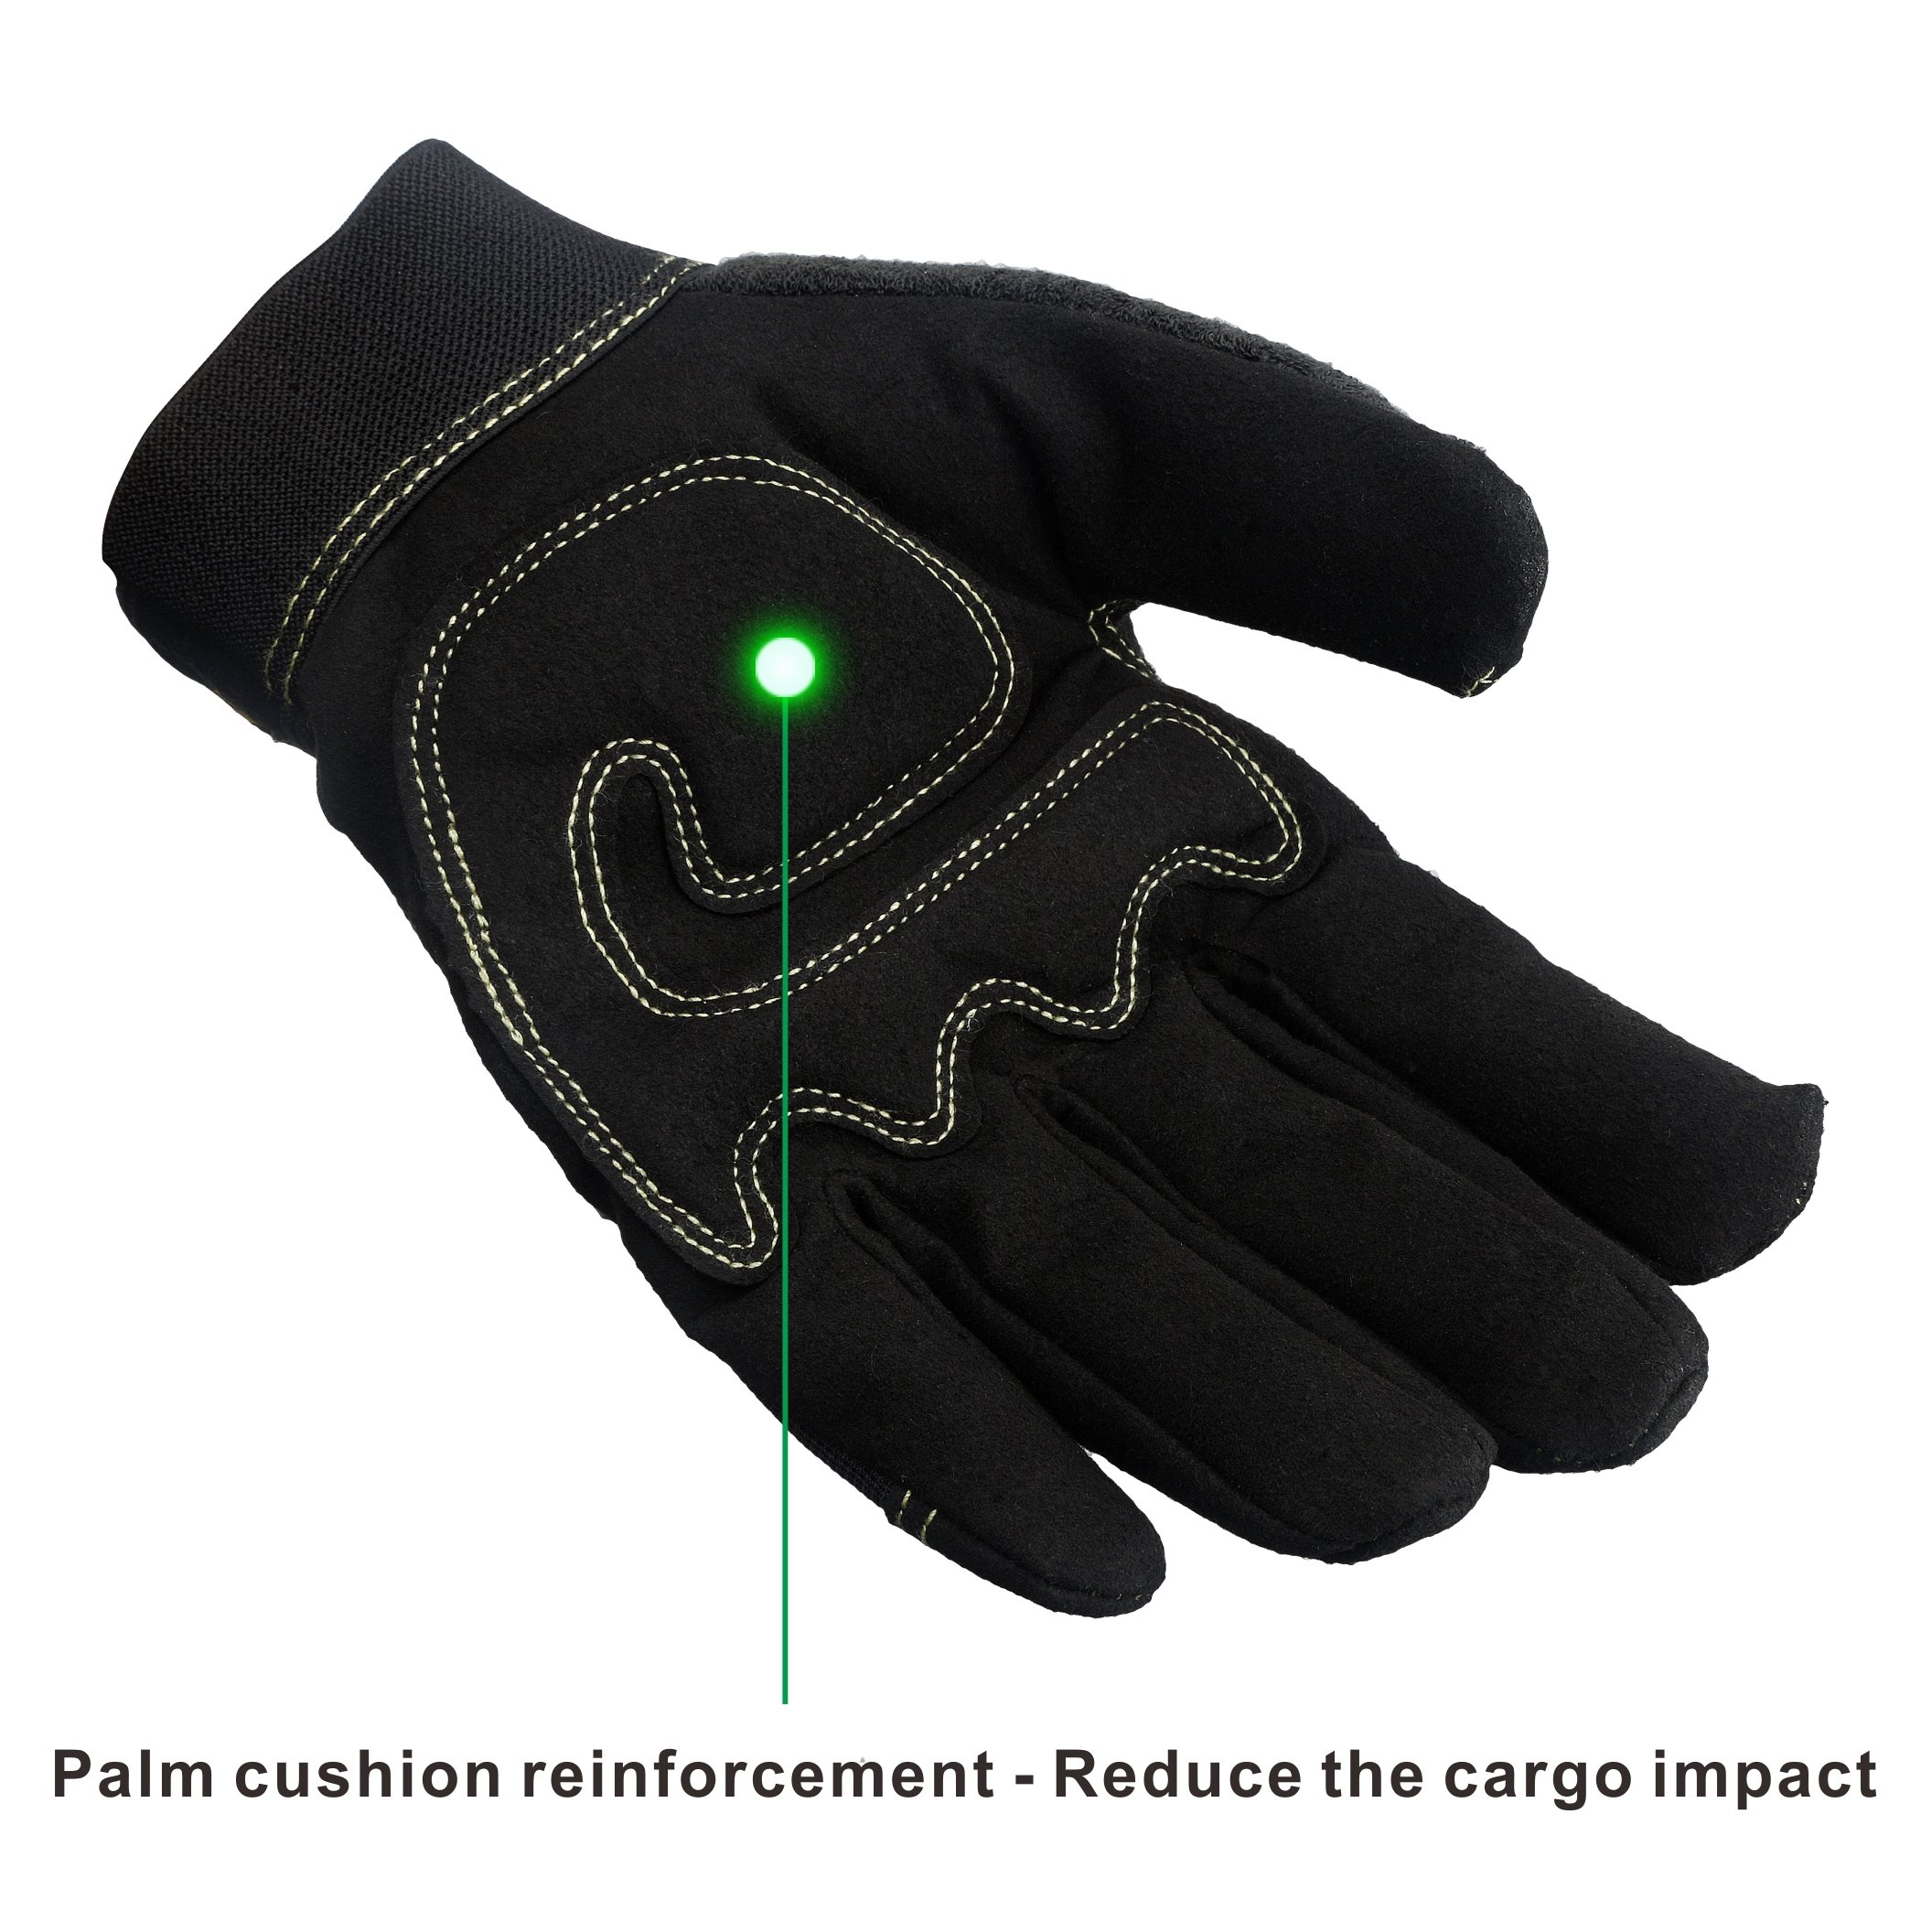 KIM YUAN Mechanic General Utility Breathable Work Gloves Touch Screen, Skid/Abrasion Resistant, Pefect for Warehouse, Construction, Outdoor, Men & Women, XL by KIM YUAN (Image #4)